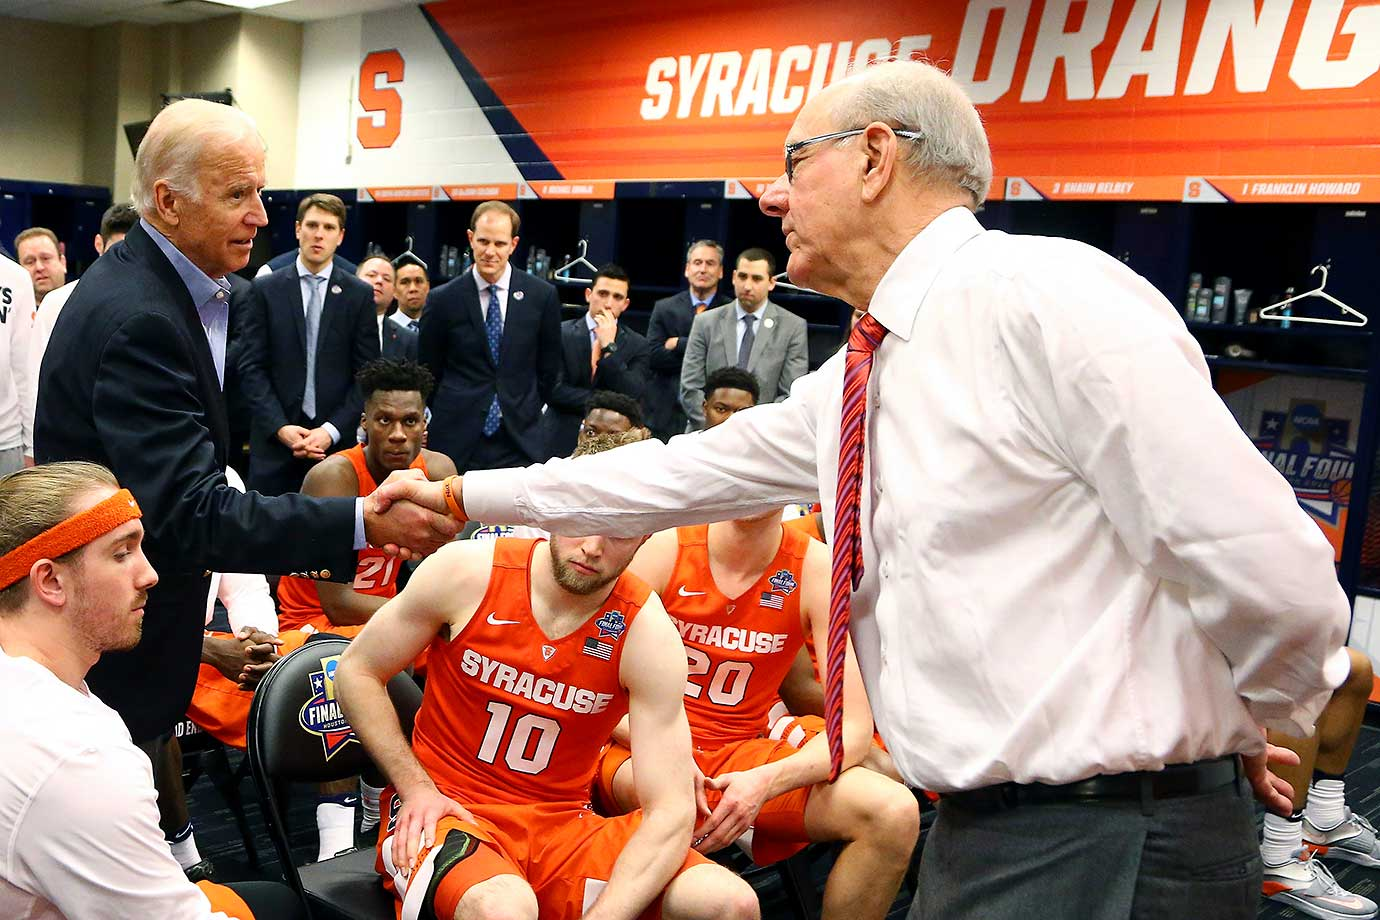 Vice president and Syracuse alum Joe Biden shakes hands with coach Jim Boeheim as he visits the team after the loss to North Carolina.